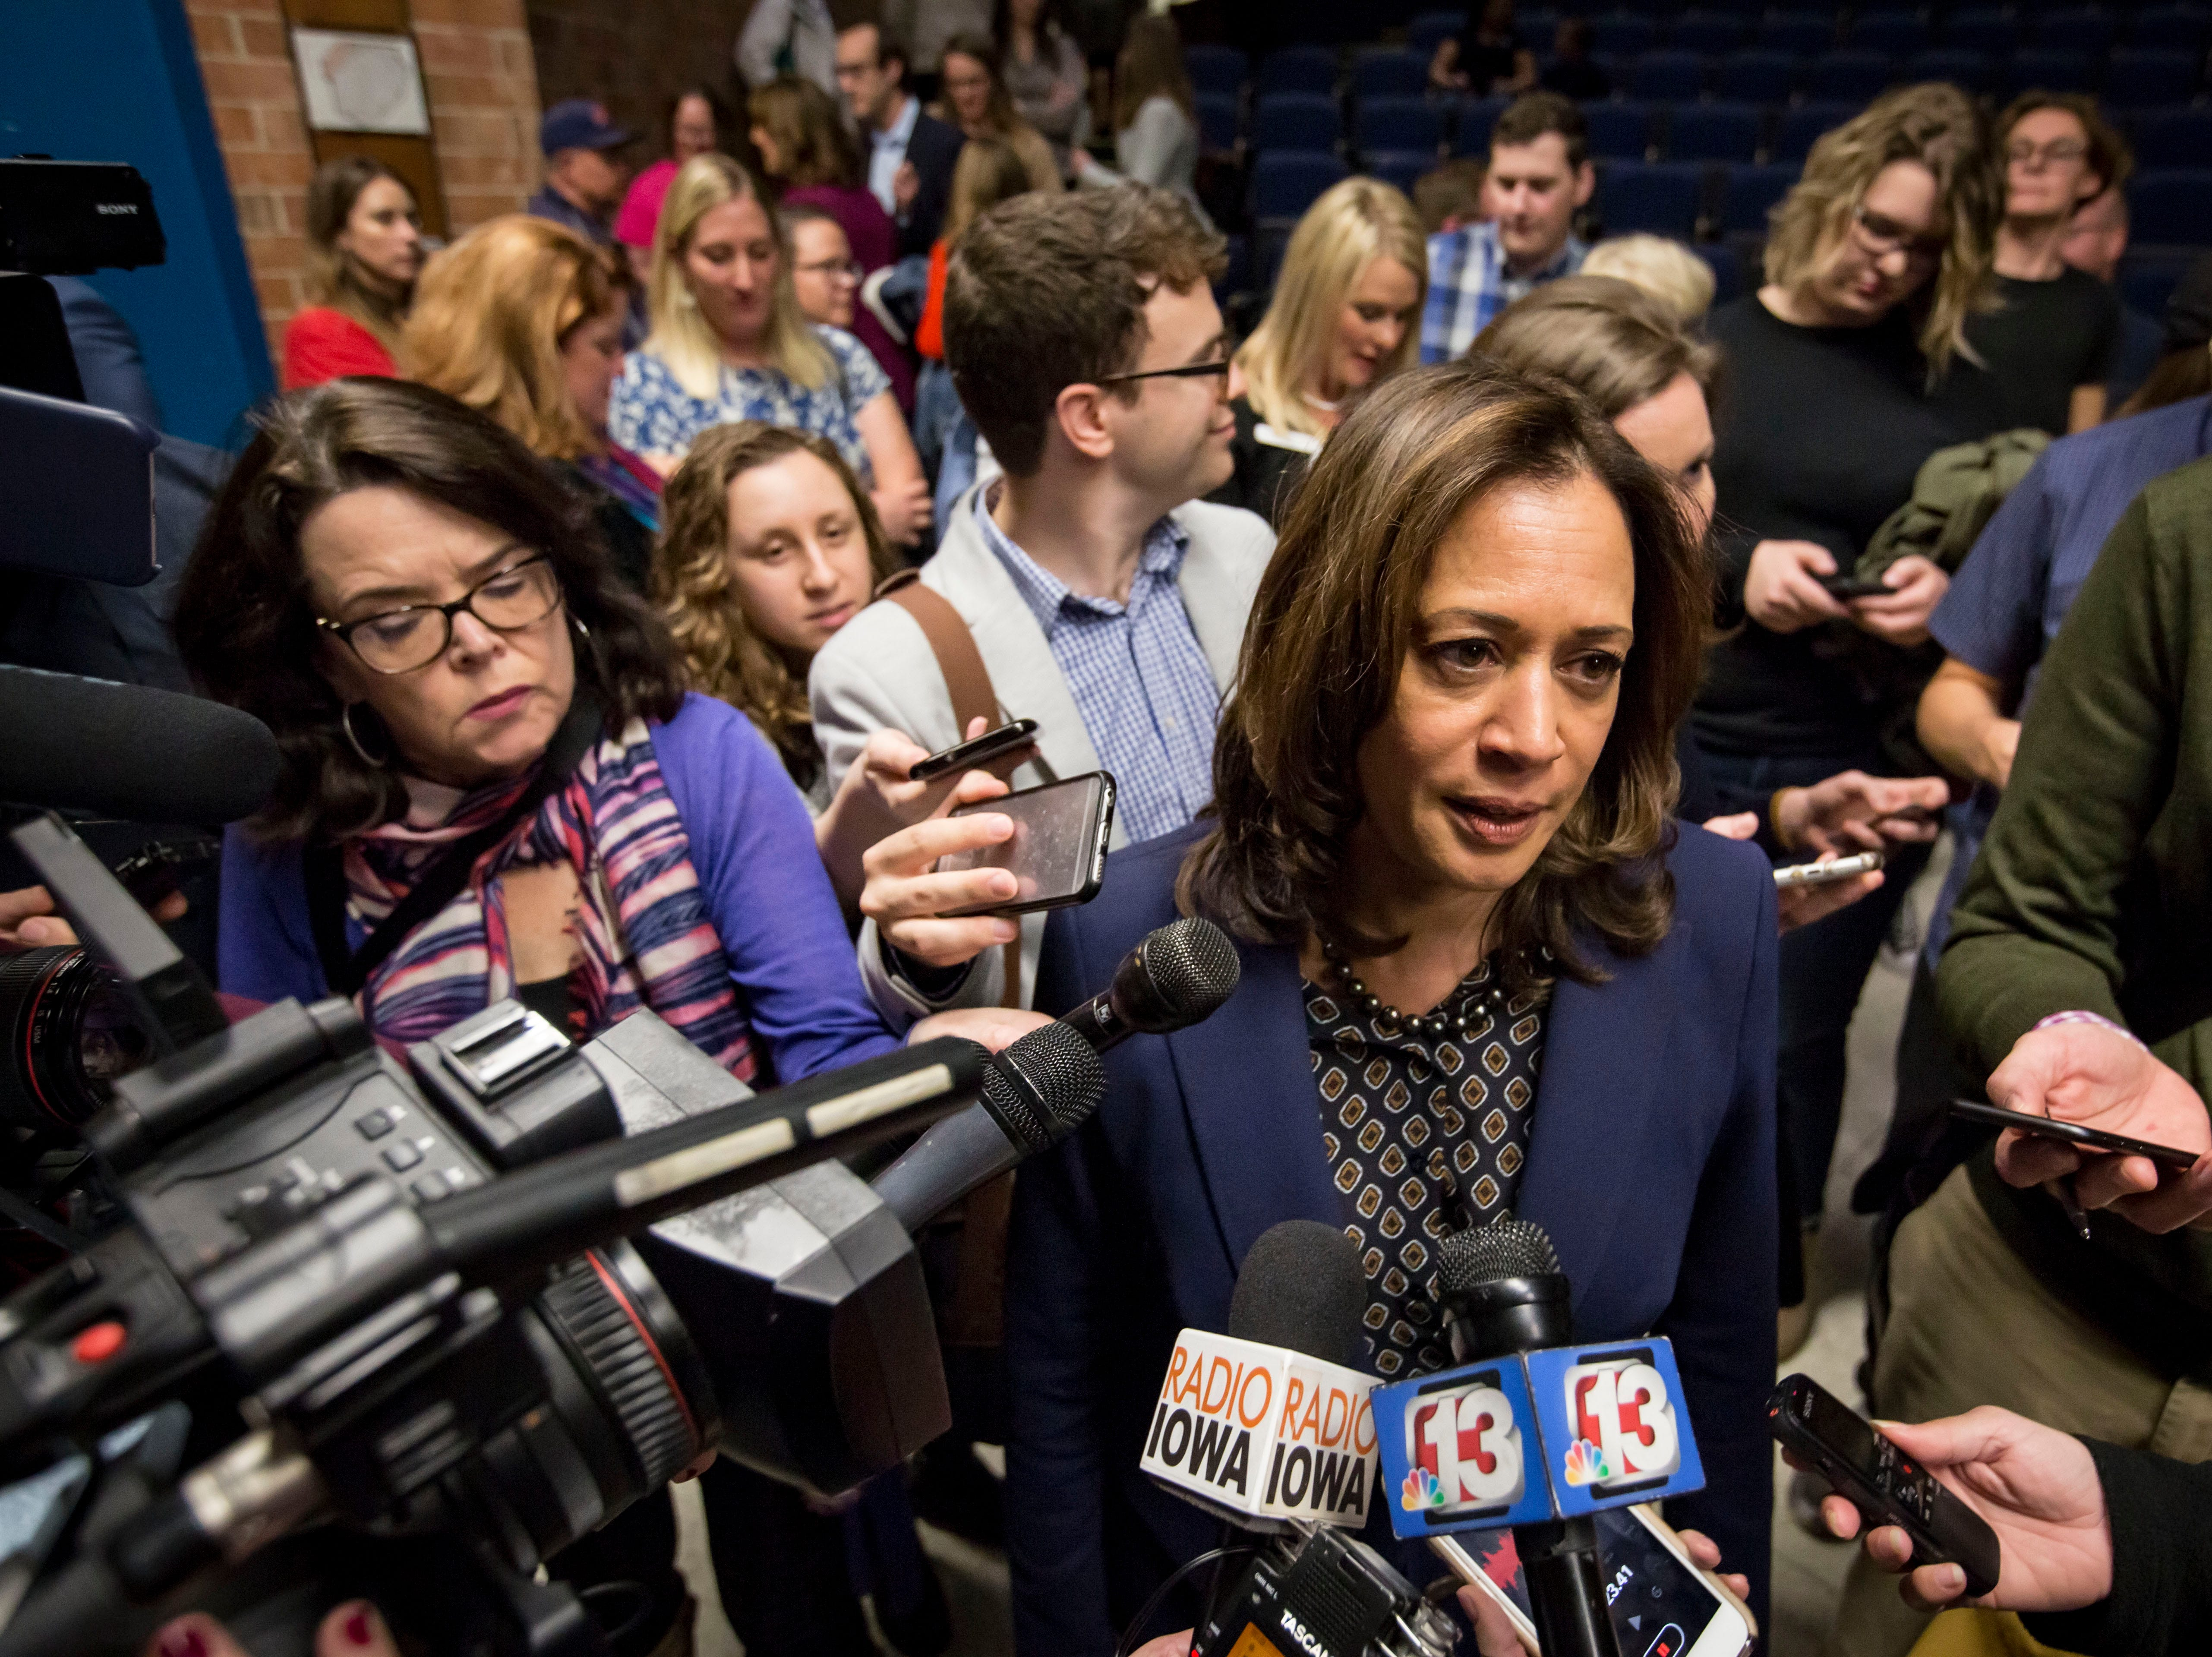 'There is so much at stake': U.S. Sen. Kamala Harris rallies Democrats in her debut Iowa trip